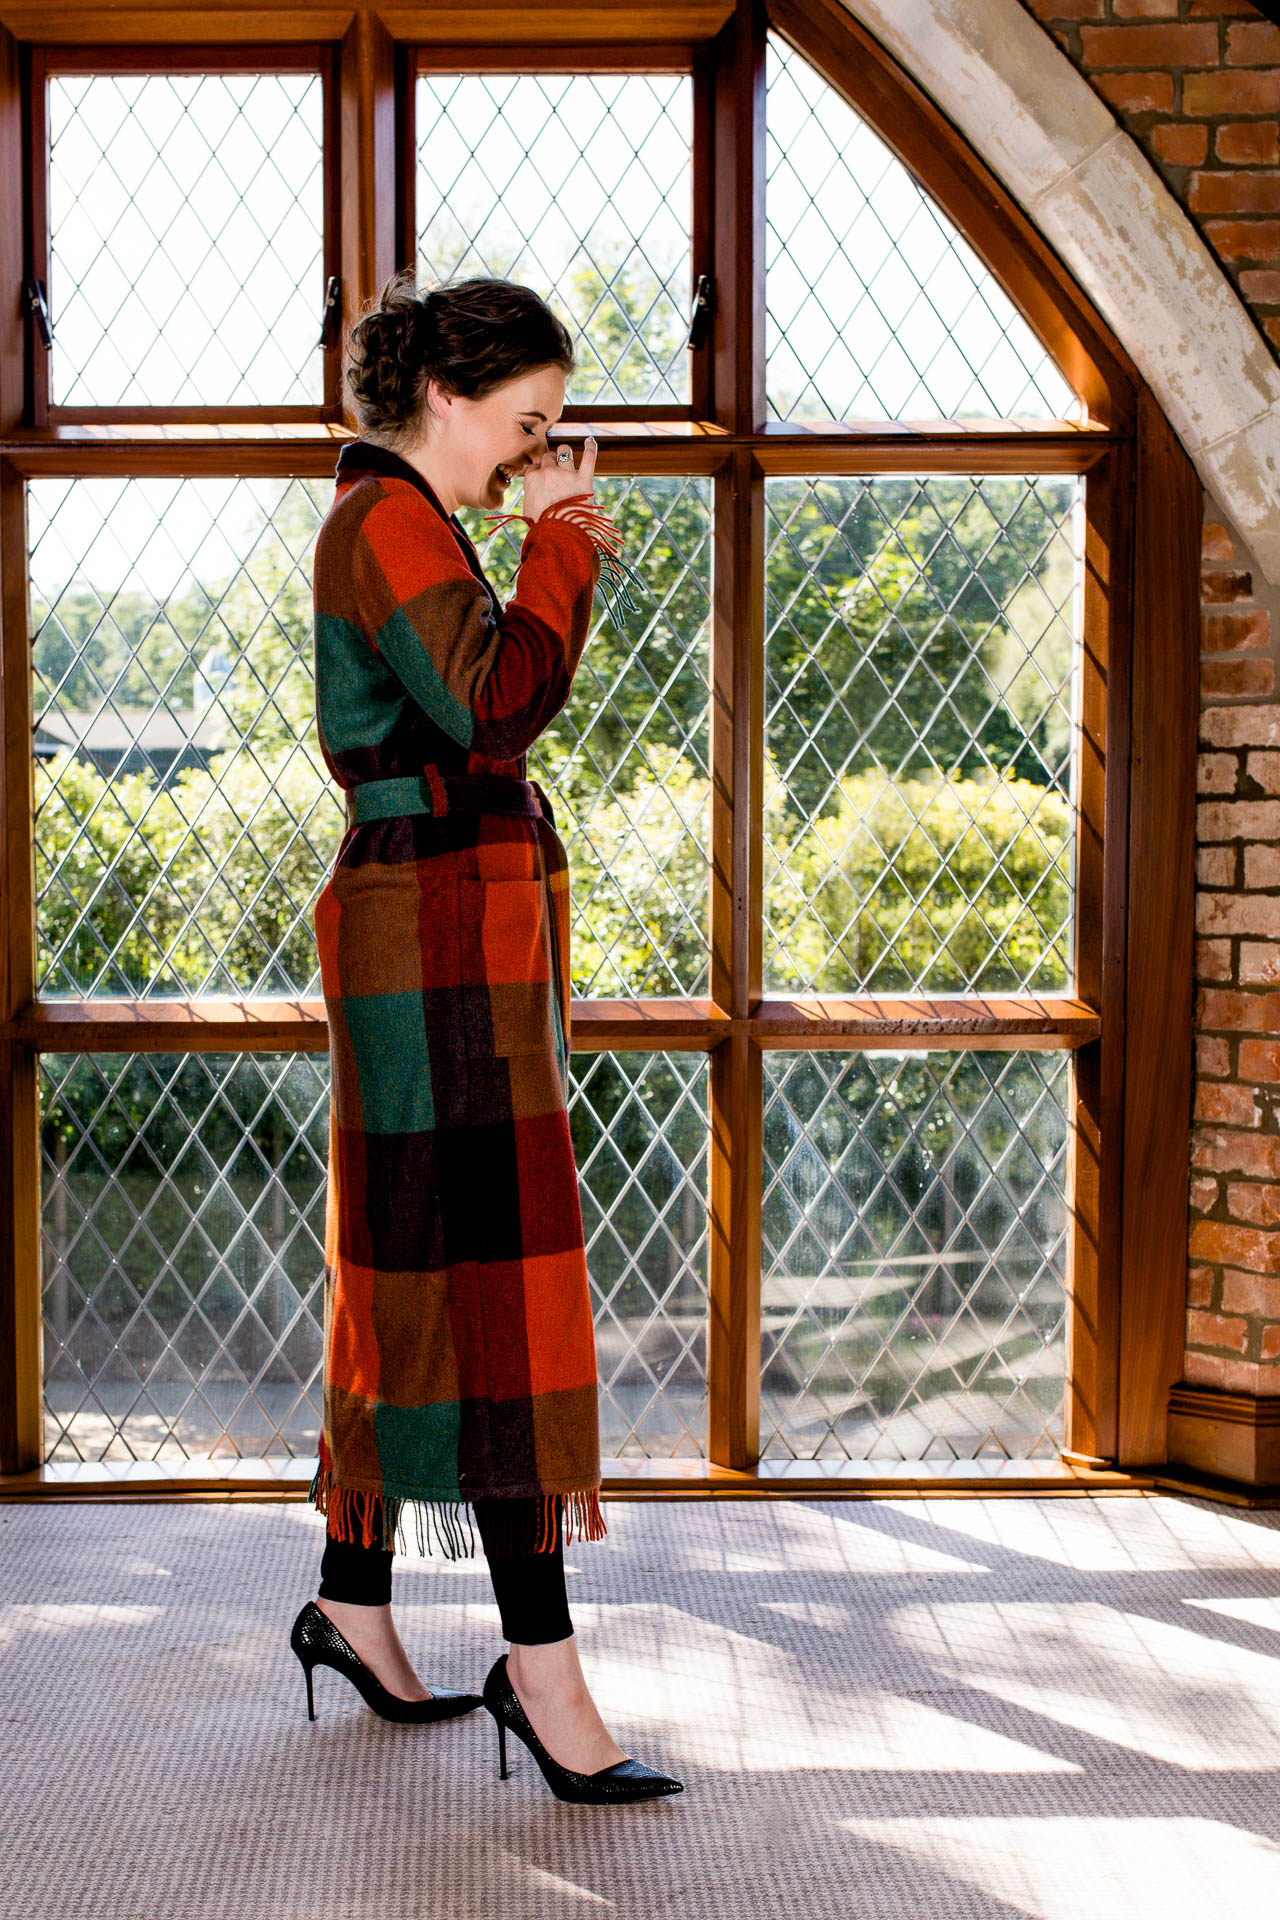 portrait of female textile designer laughing in arched window